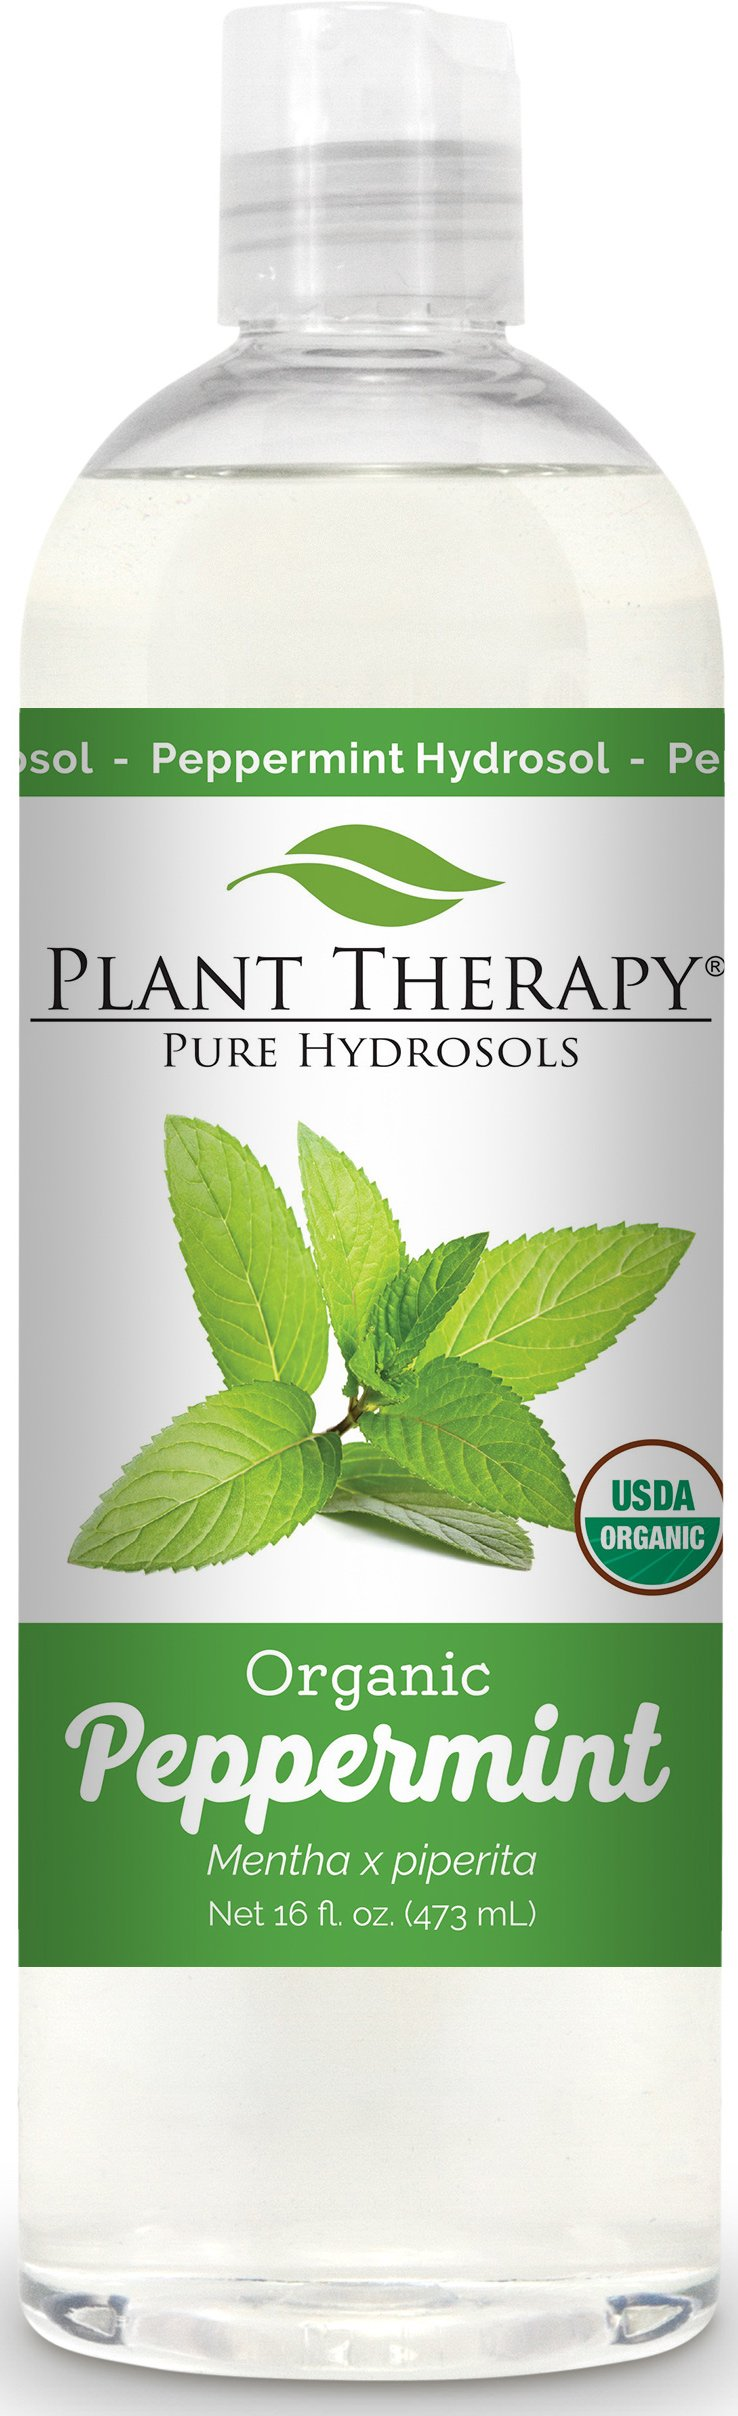 Plant Therapy Peppermint Organic Hydrosol Flower Water, By-Product of Essential Oils 16 oz by Plant Therapy